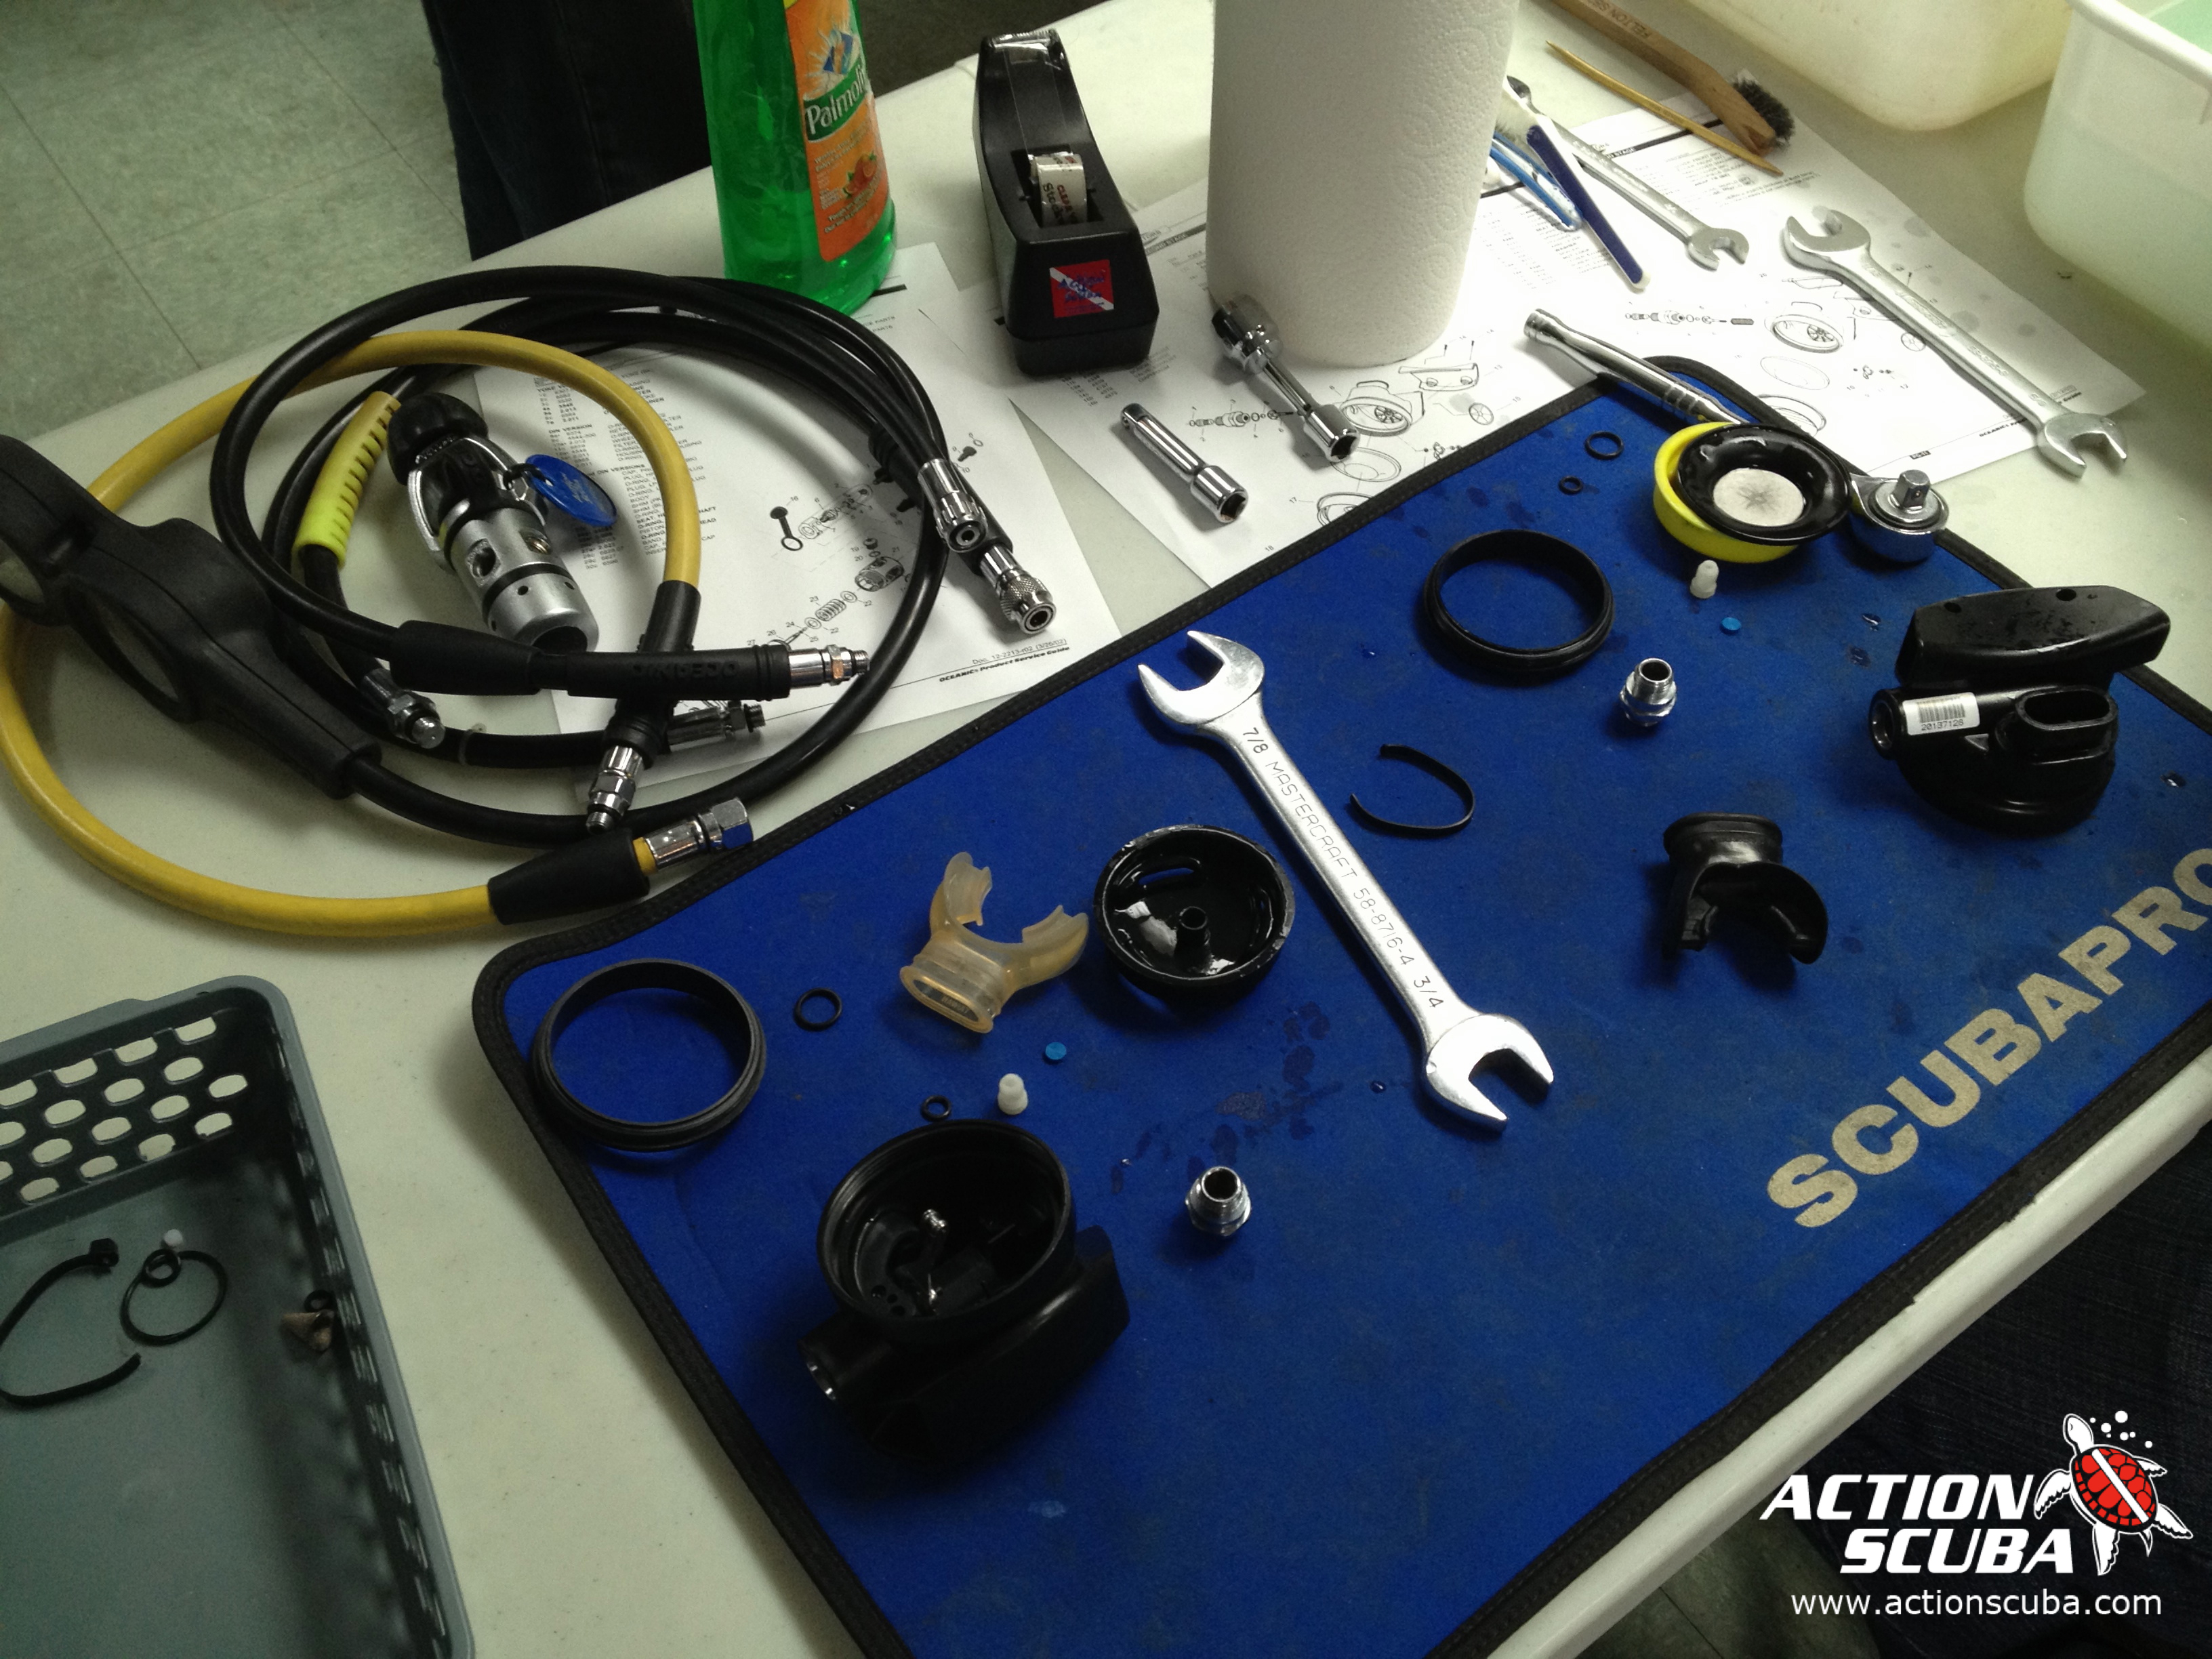 Montreal Diving Action Scuba Padi Equipment Specialist Specialty Course Electrical Wiring Courses